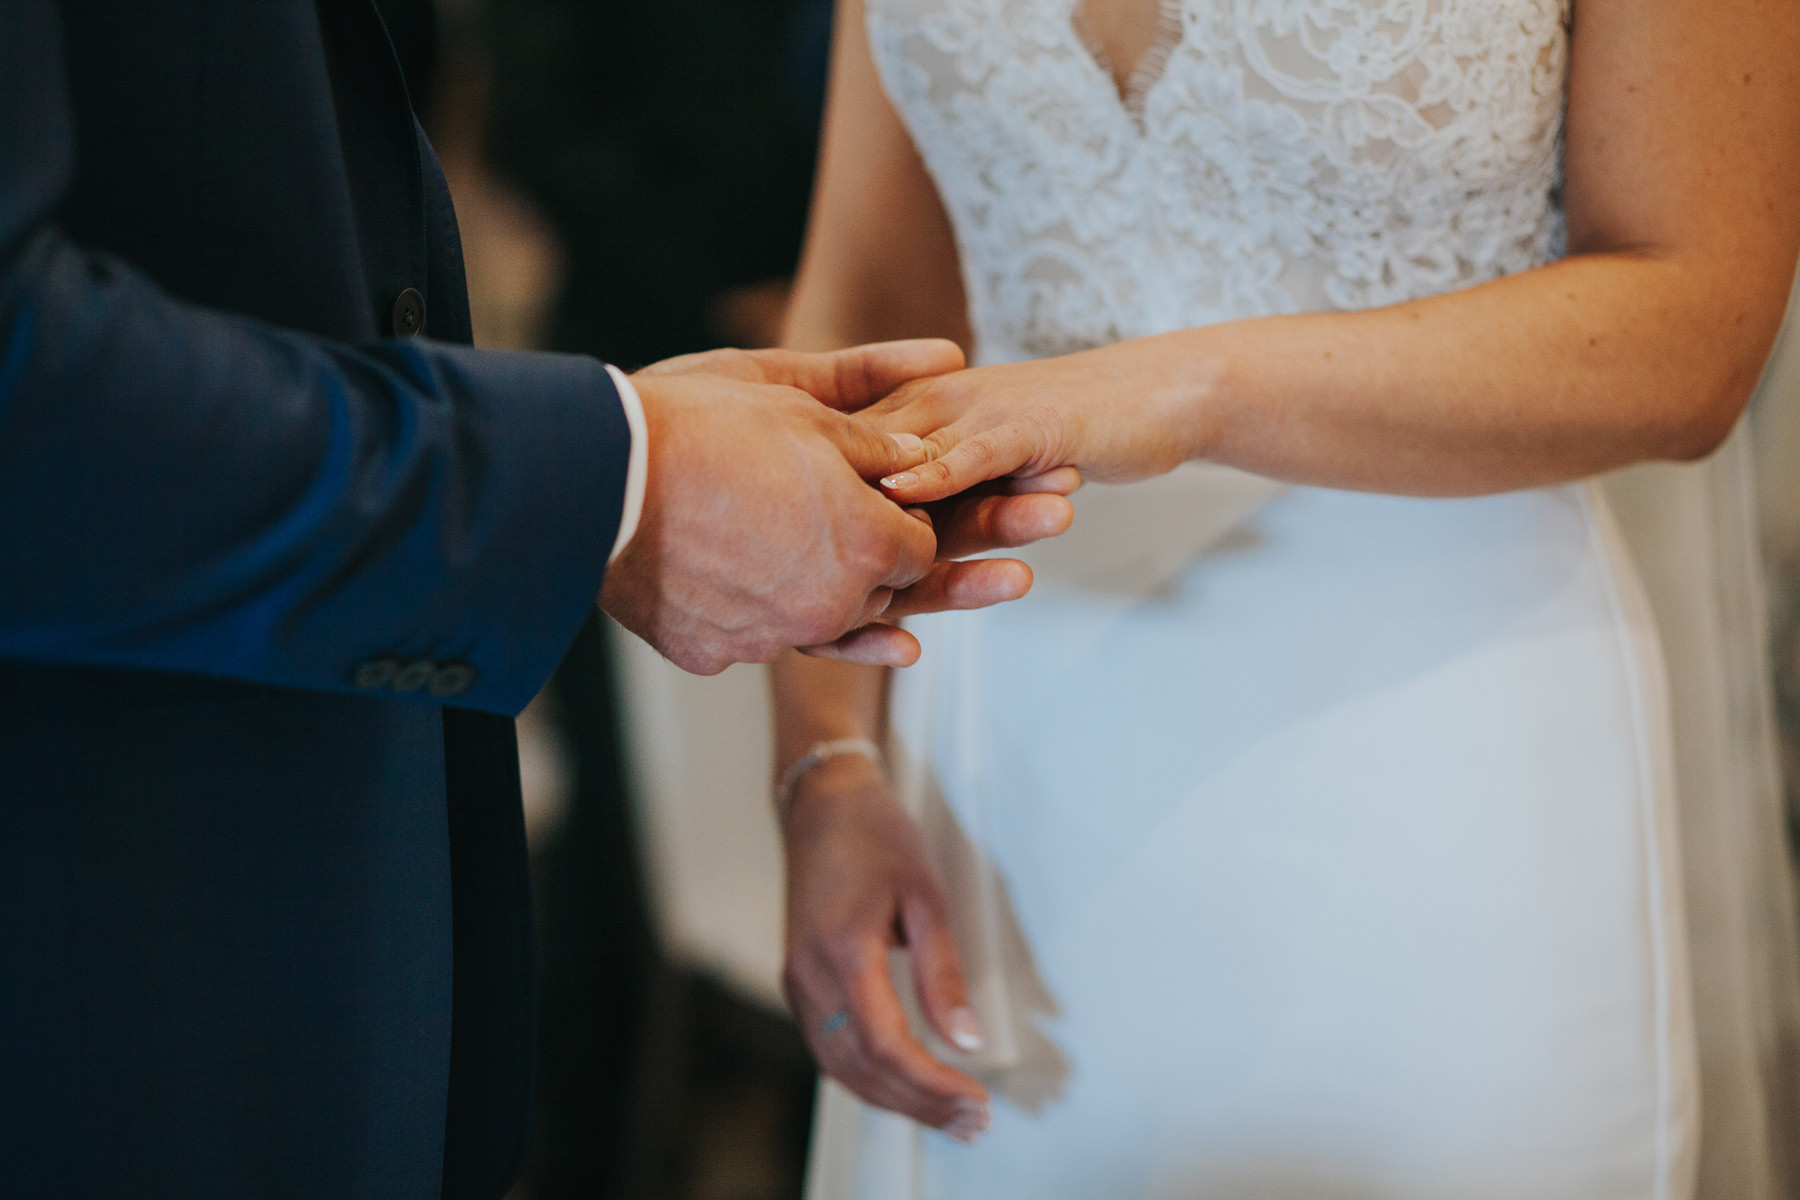 Richmond The Bingham Wedding Photographer London--groom bride ceremony exchanging rings-CRL-162.jpg